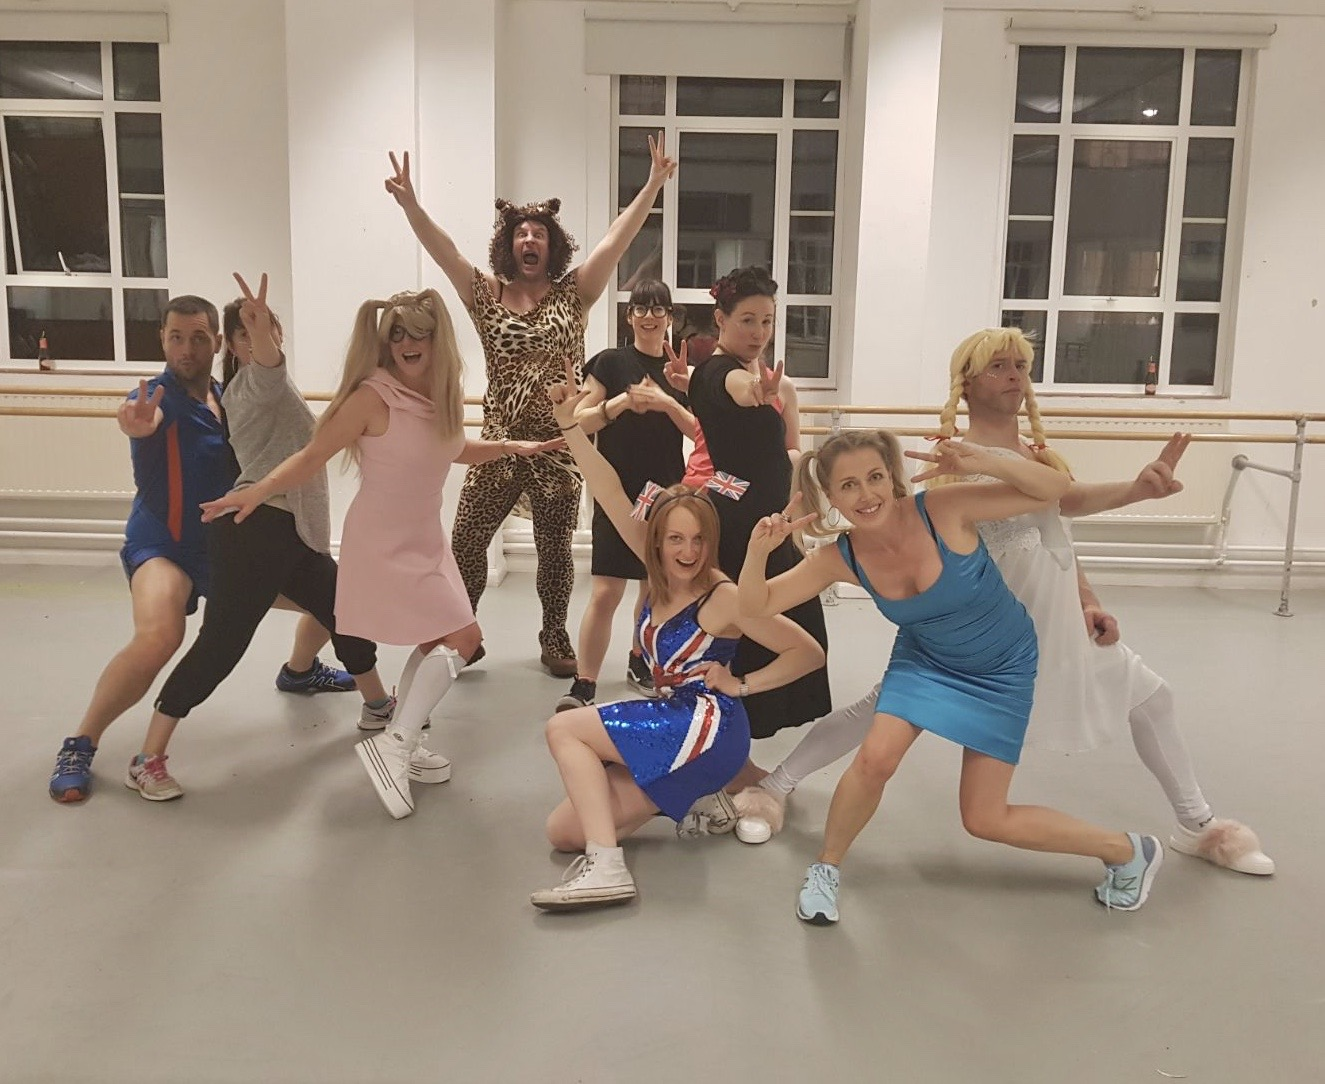 40th Birthday Spice Girls Dance Party Experience